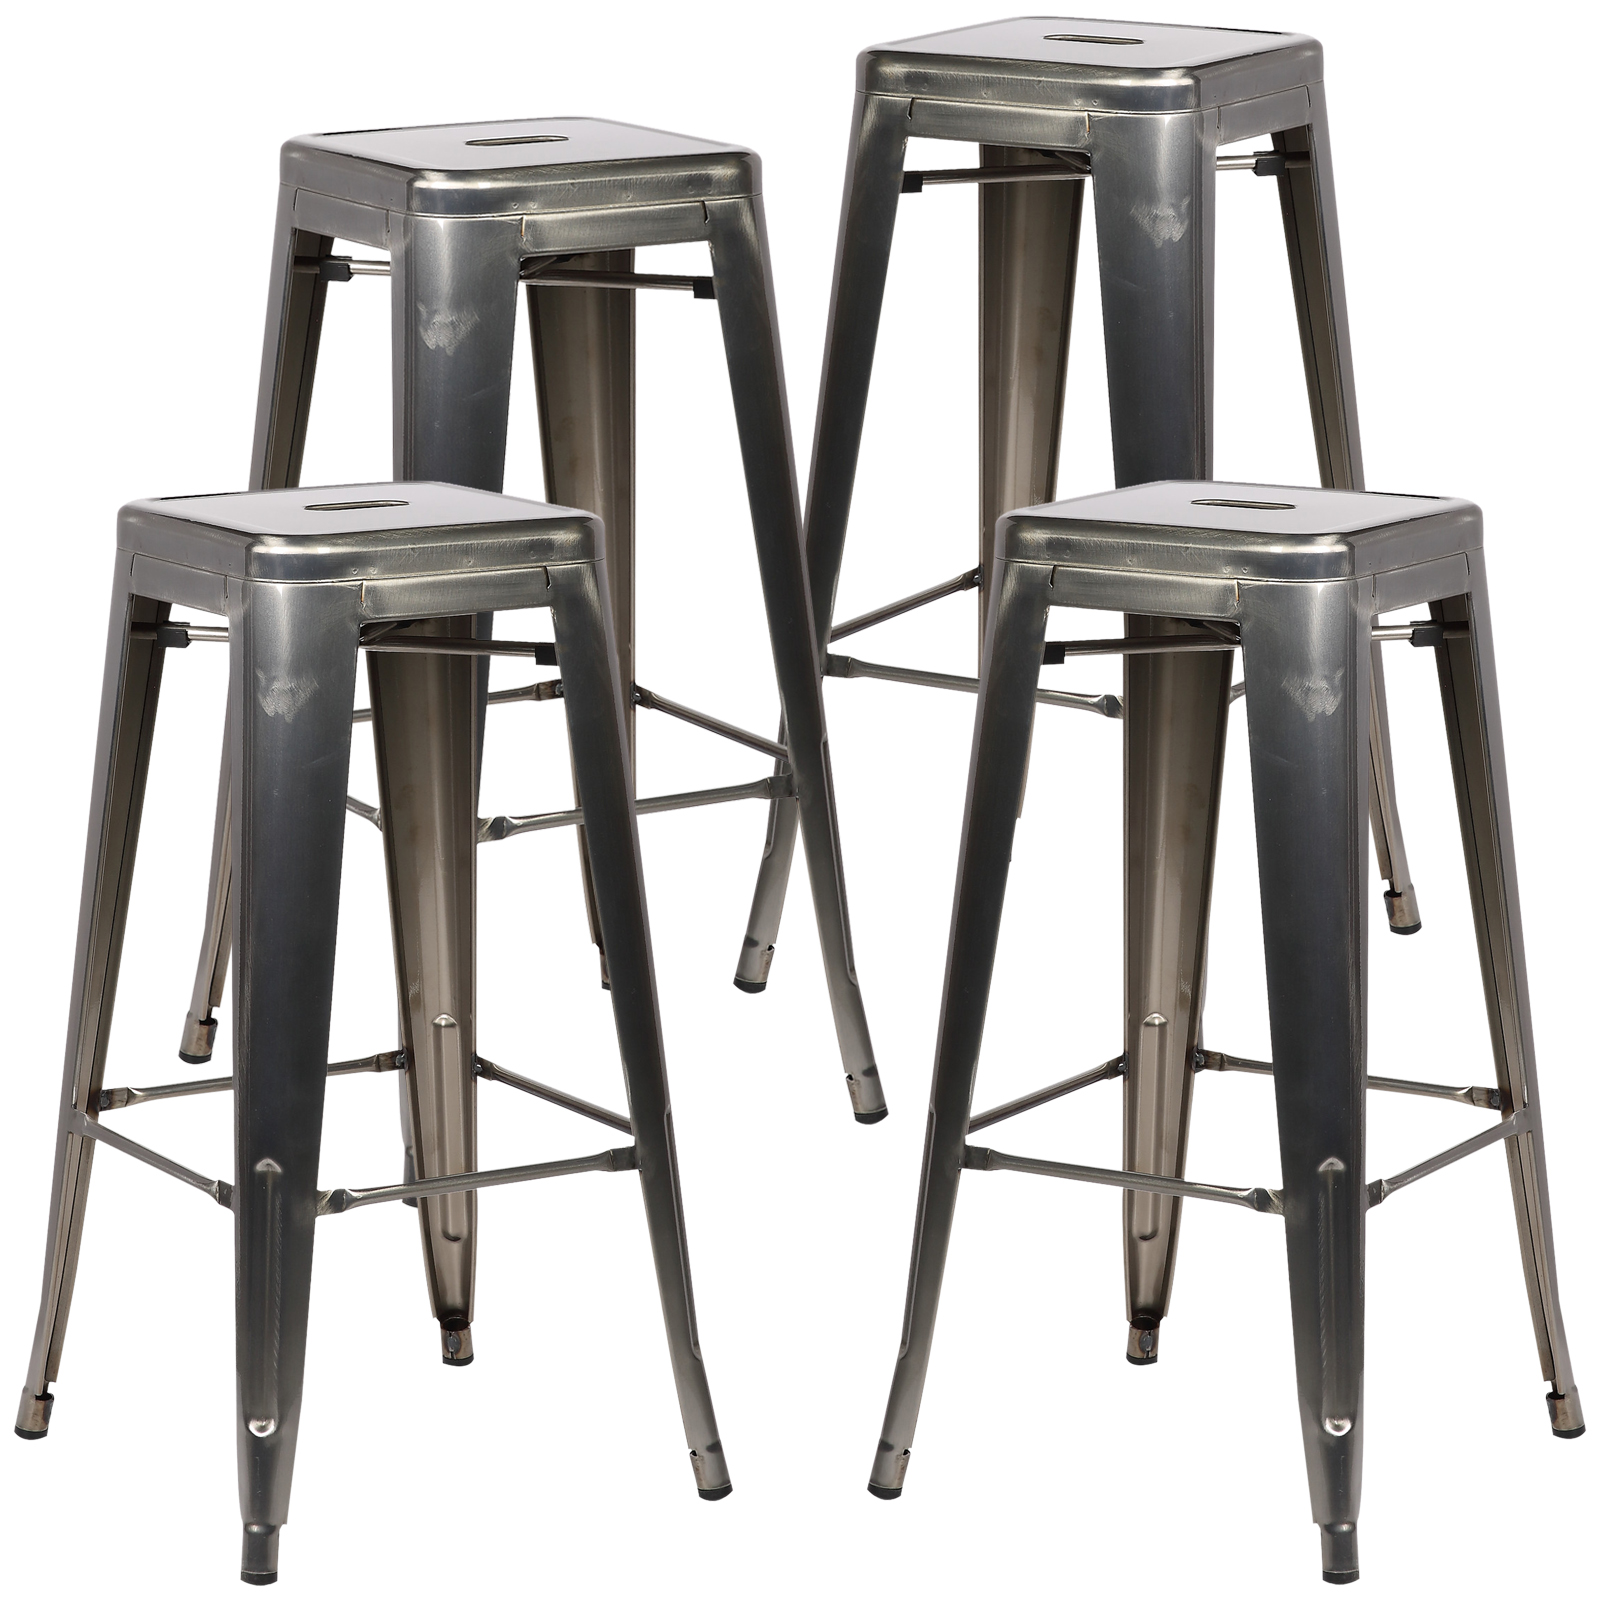 Poly and Bark Trattoria Bar Stool in Polished Gunmetal (Set of 4) by Poly and Bark